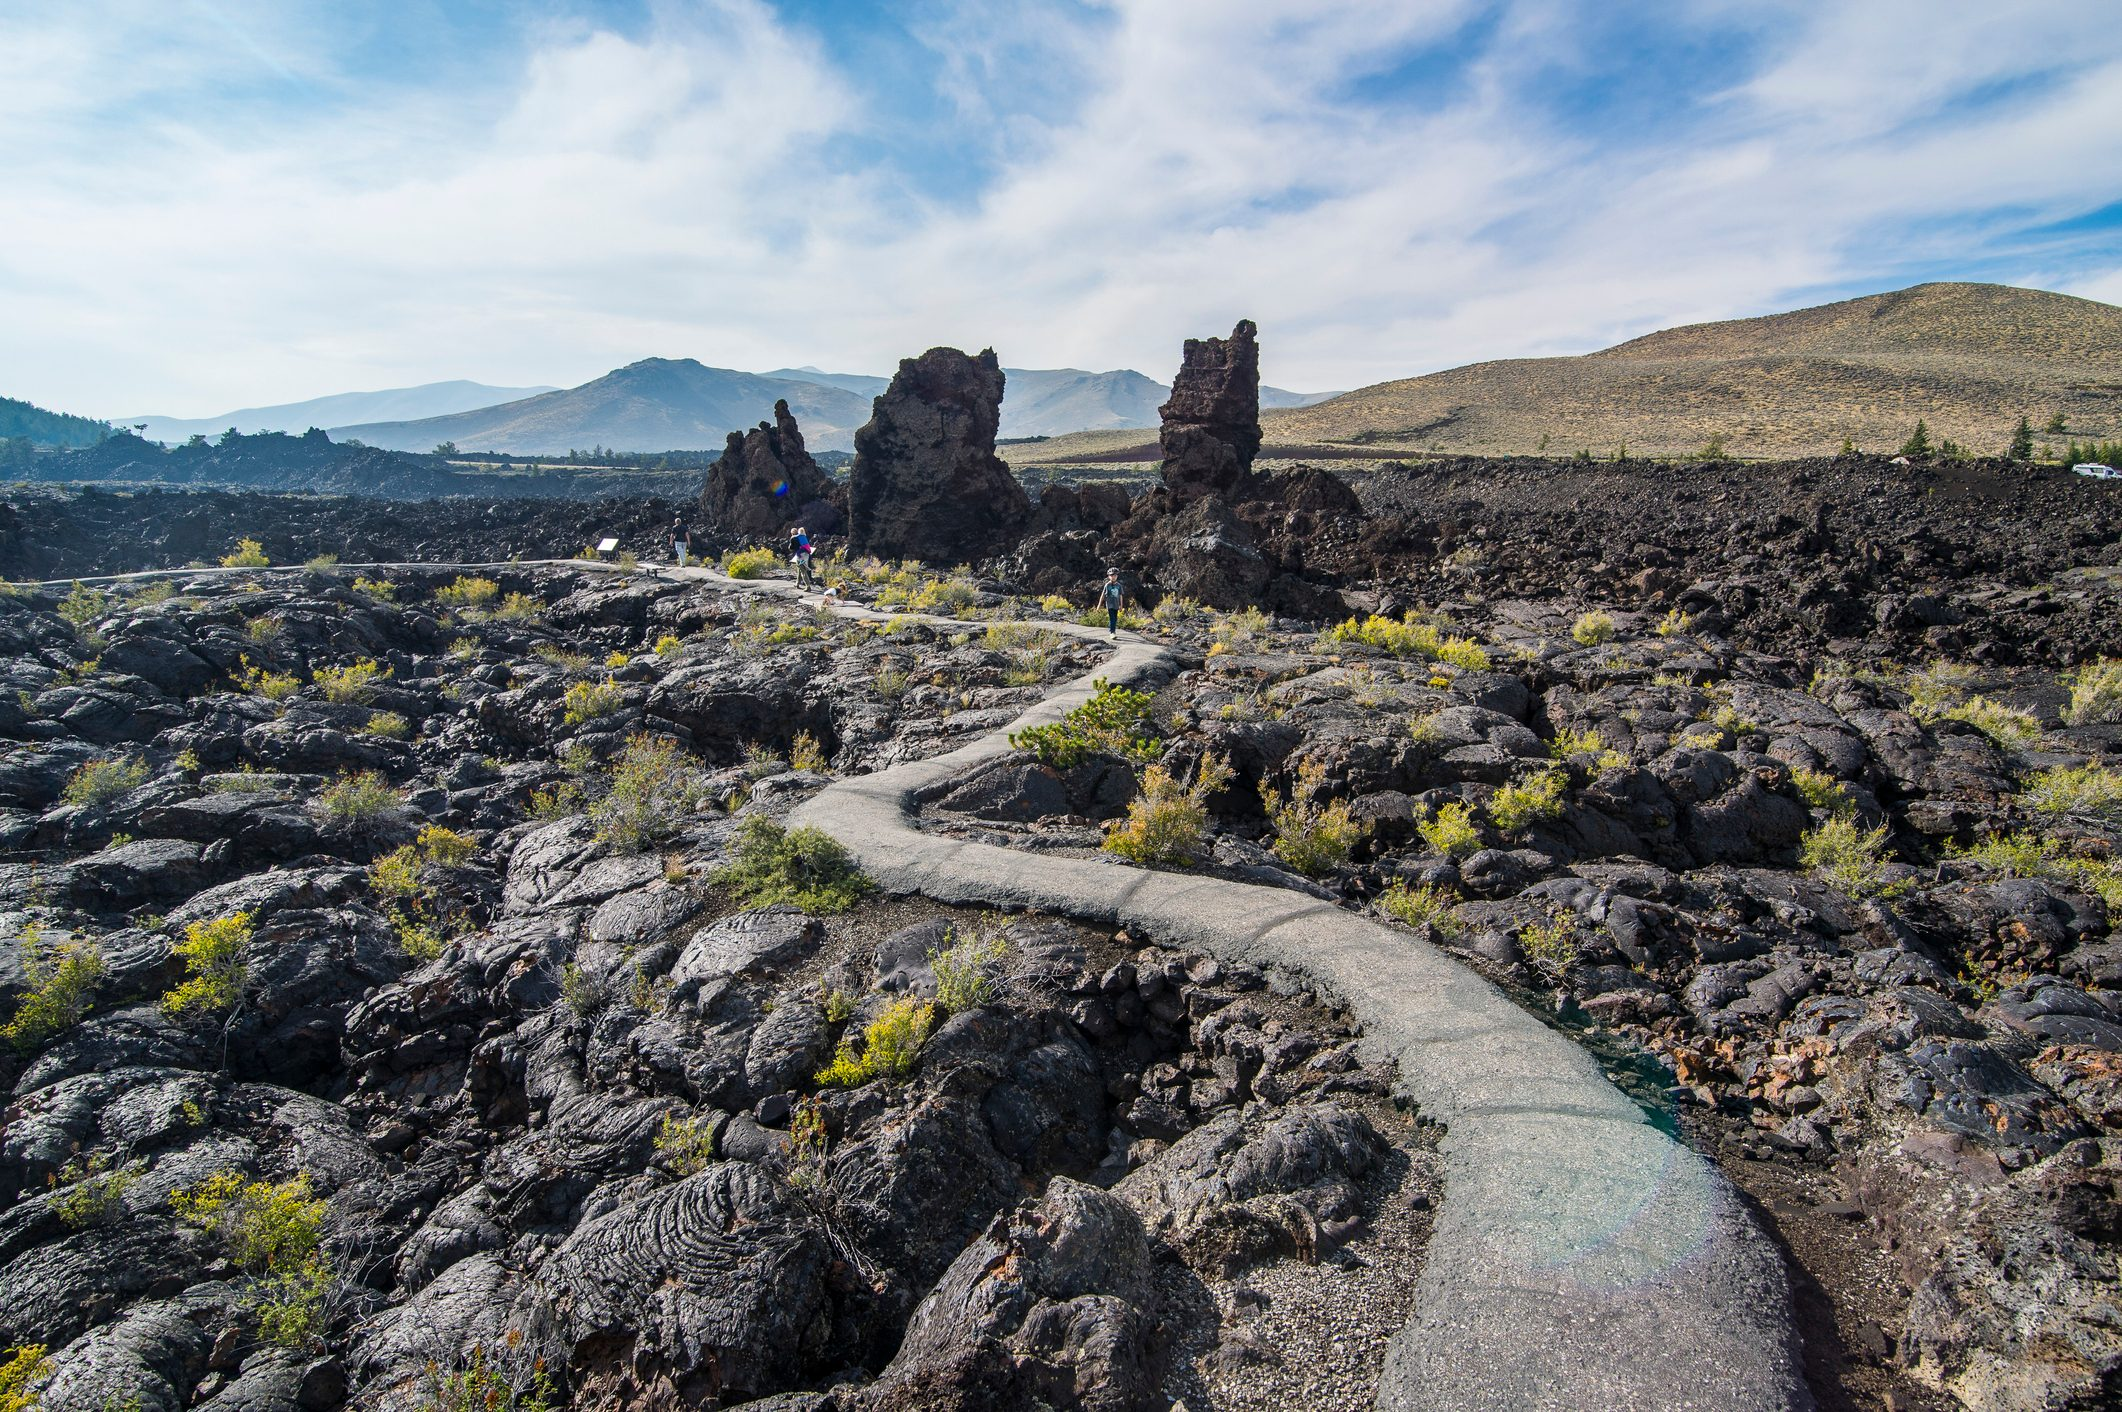 Walkway through cold lava in the Craters of the Moon National Park, Idaho, United States